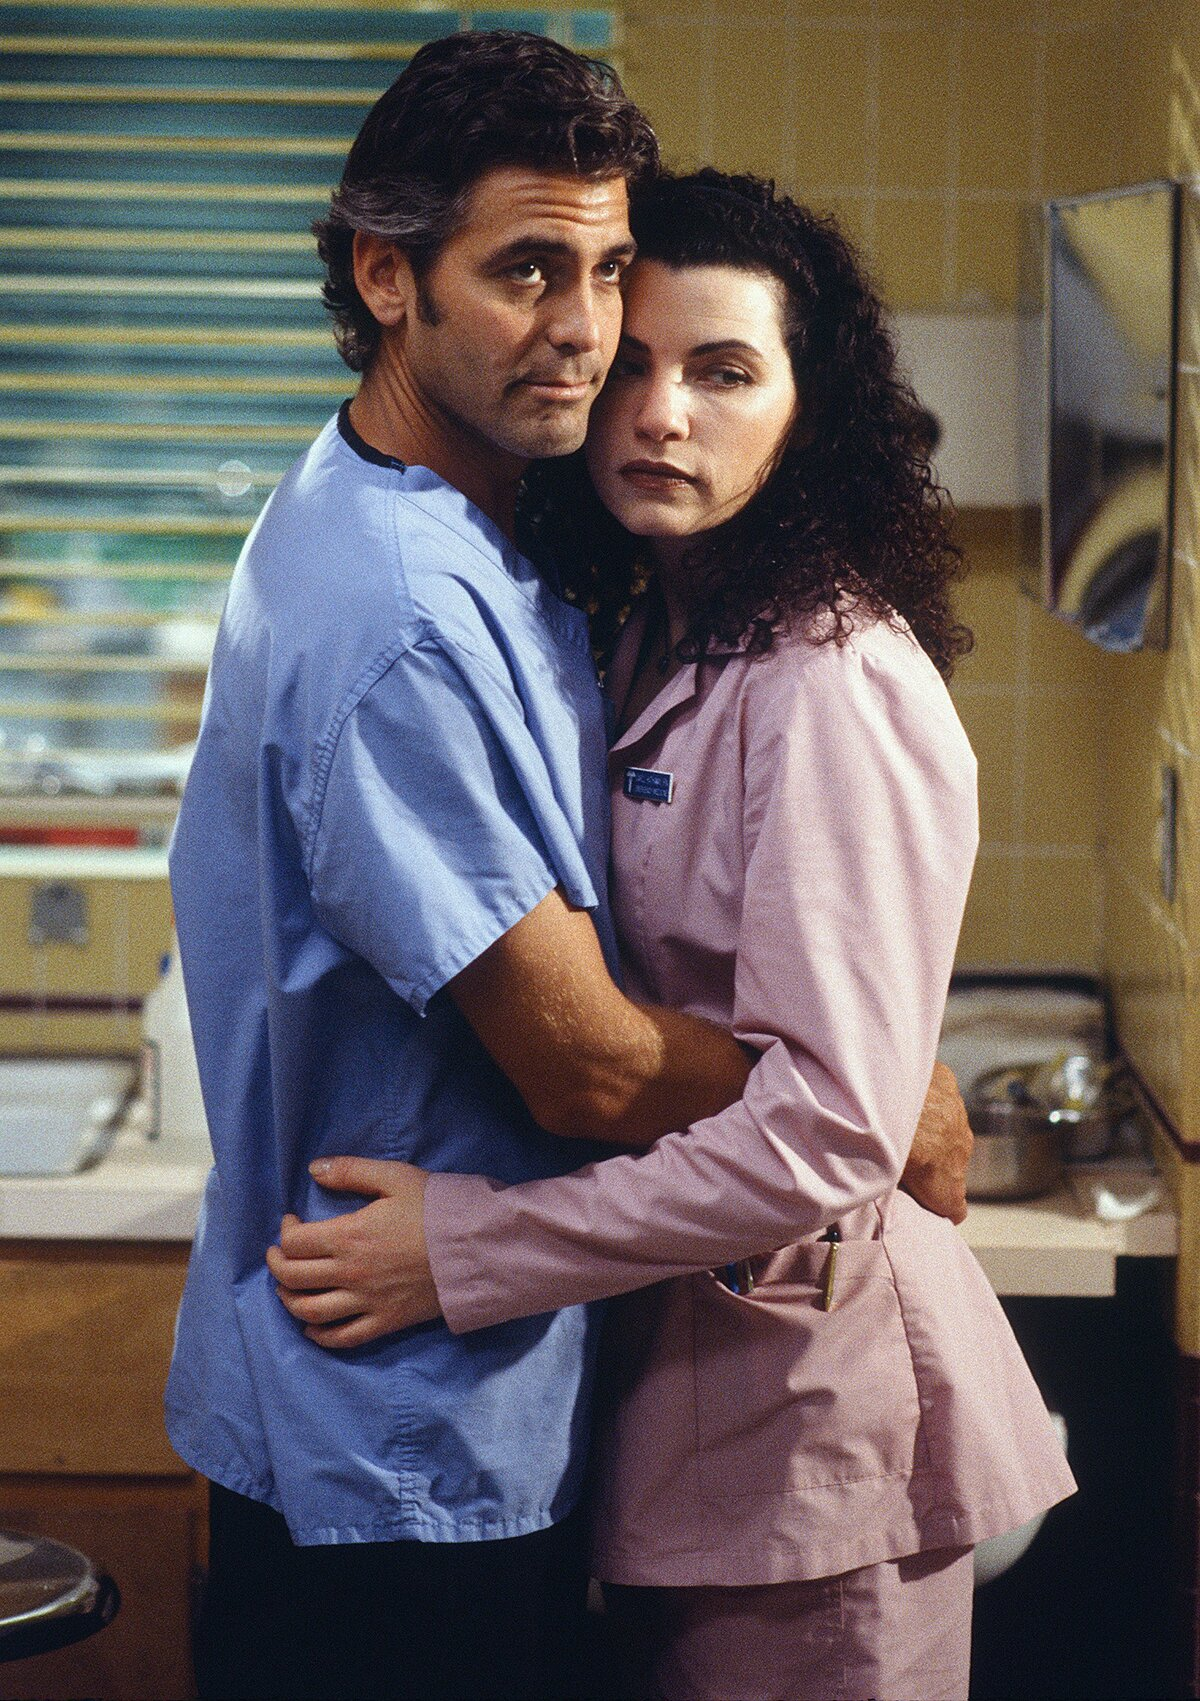 Julianna Margulies on Her George Clooney 'Crush' and Why They Never Dated While Filming ER Image?url=https%3A%2F%2Fstatic.onecms.io%2Fwp-content%2Fuploads%2Fsites%2F20%2F2021%2F05%2F25%2Fgeorge-clooney